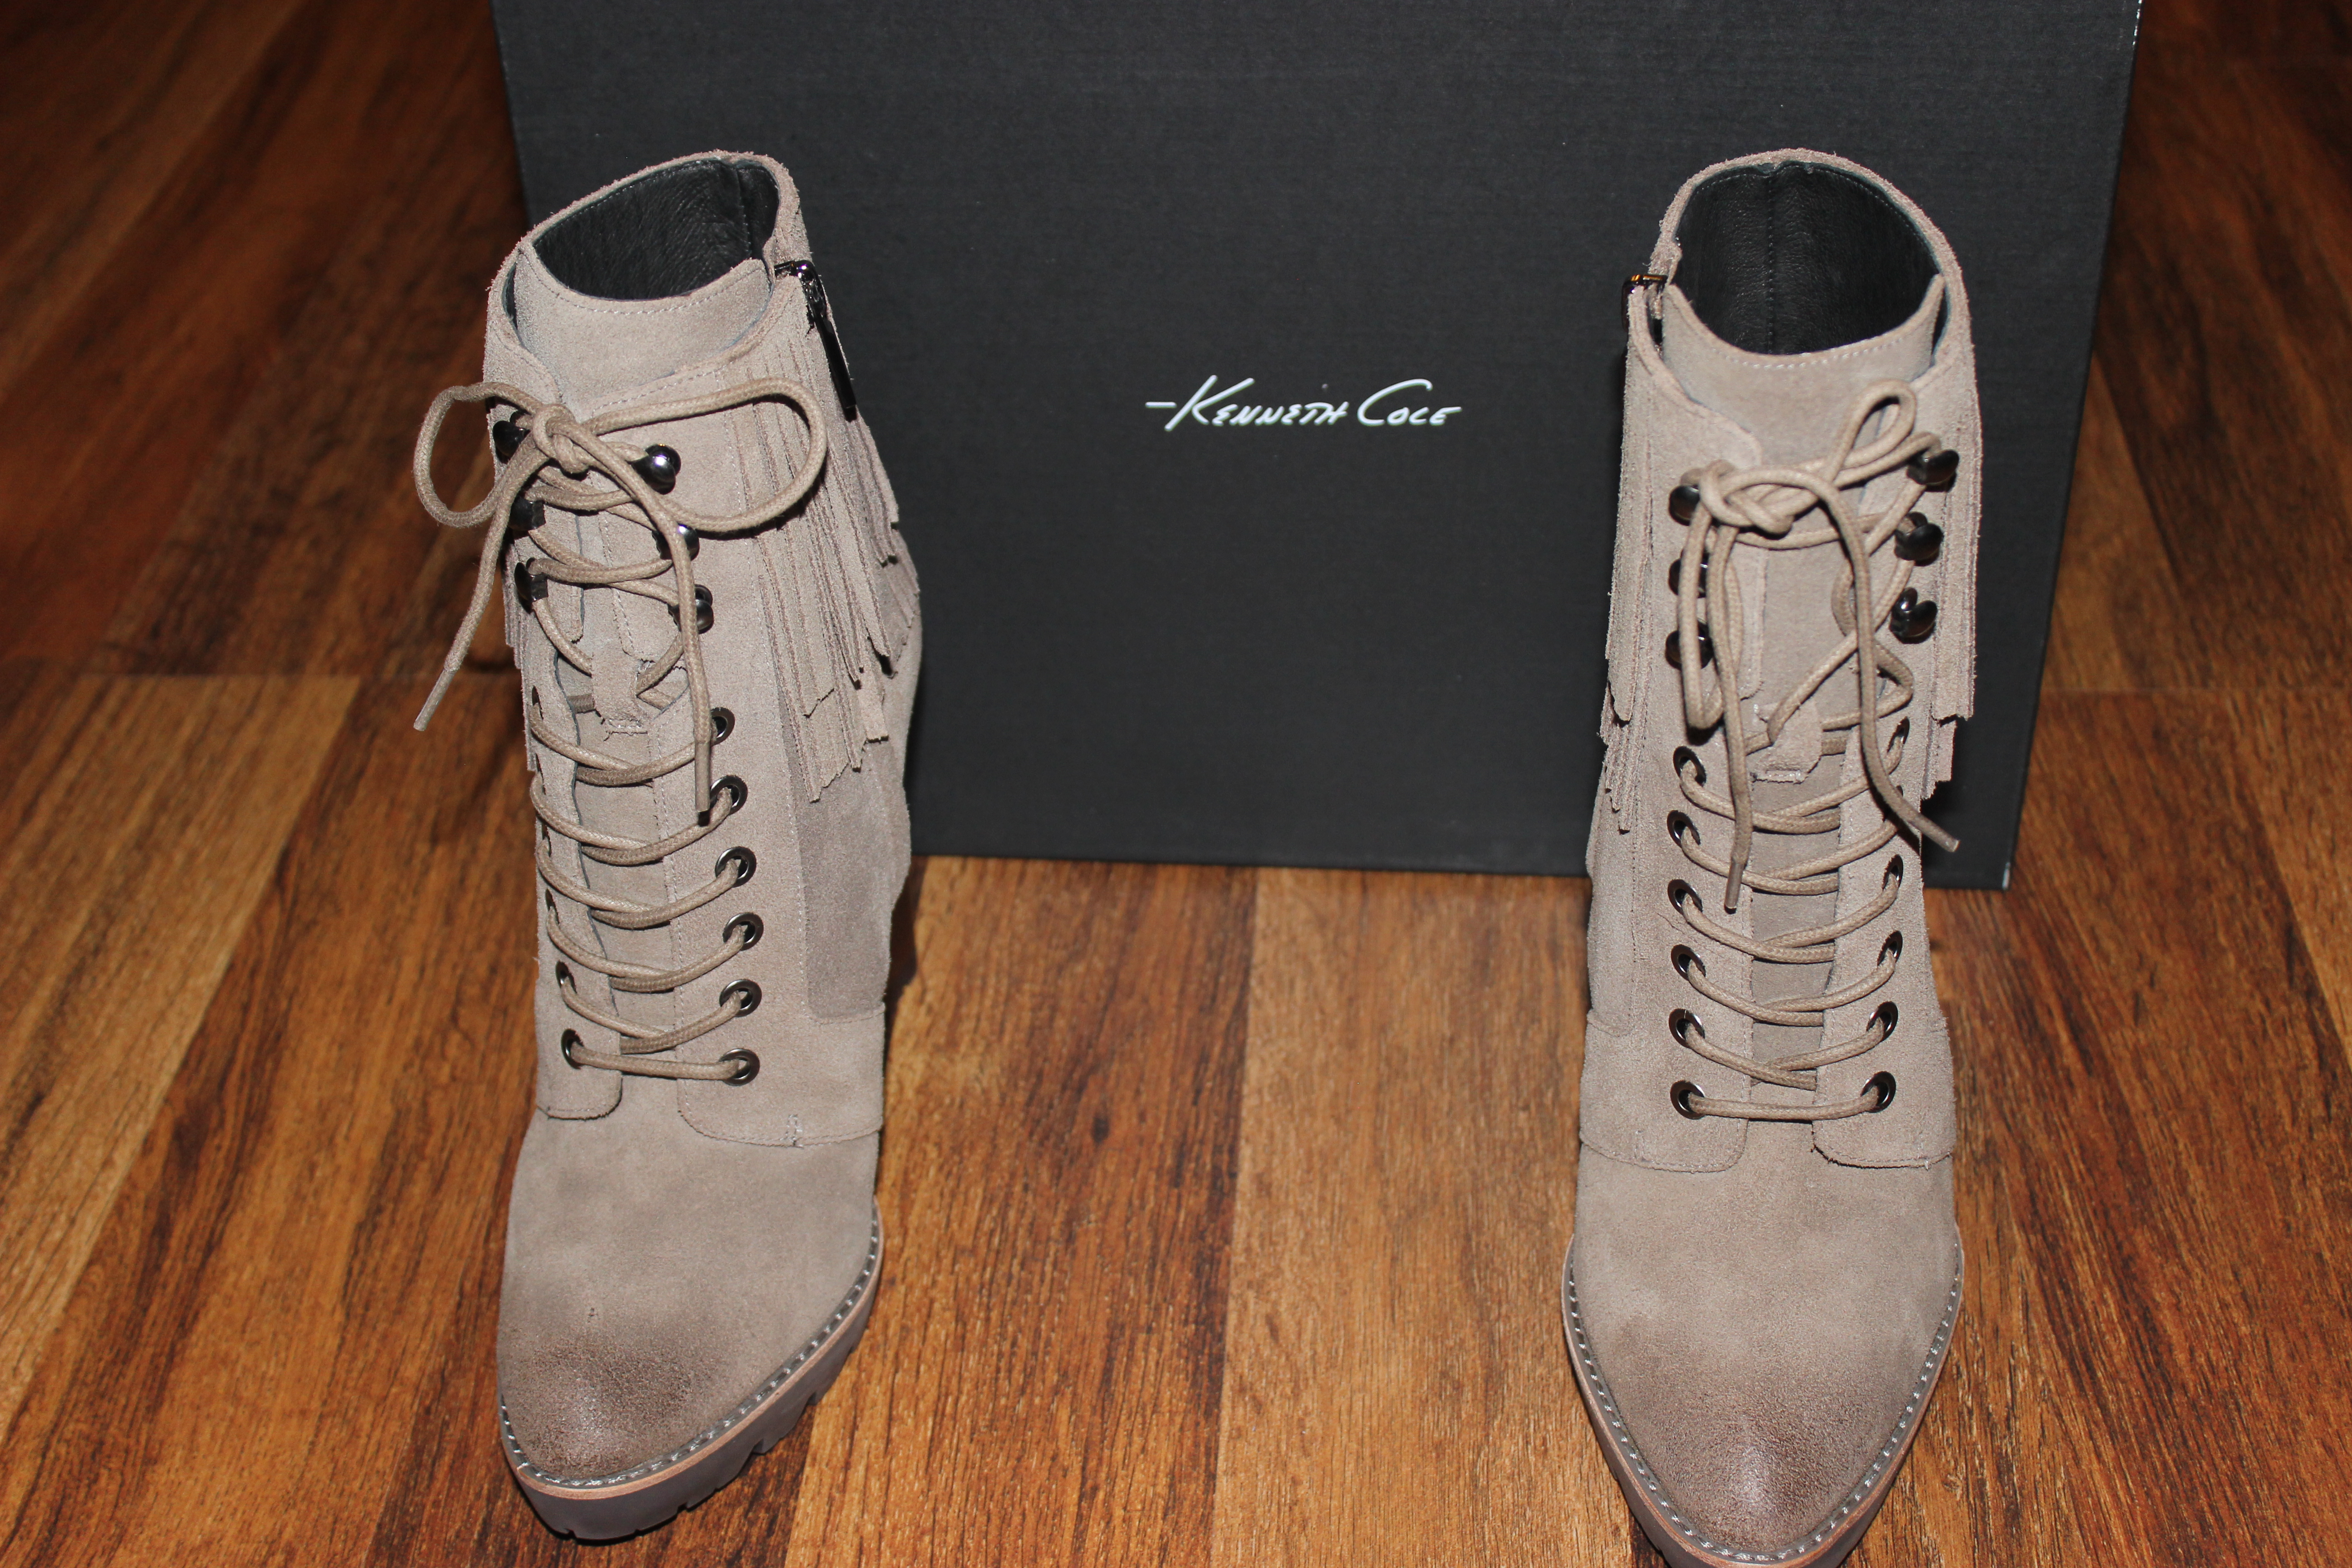 Kenneth-Cole-New York-Olla-Fringe- Hiker-Booties-oohlalablog-4